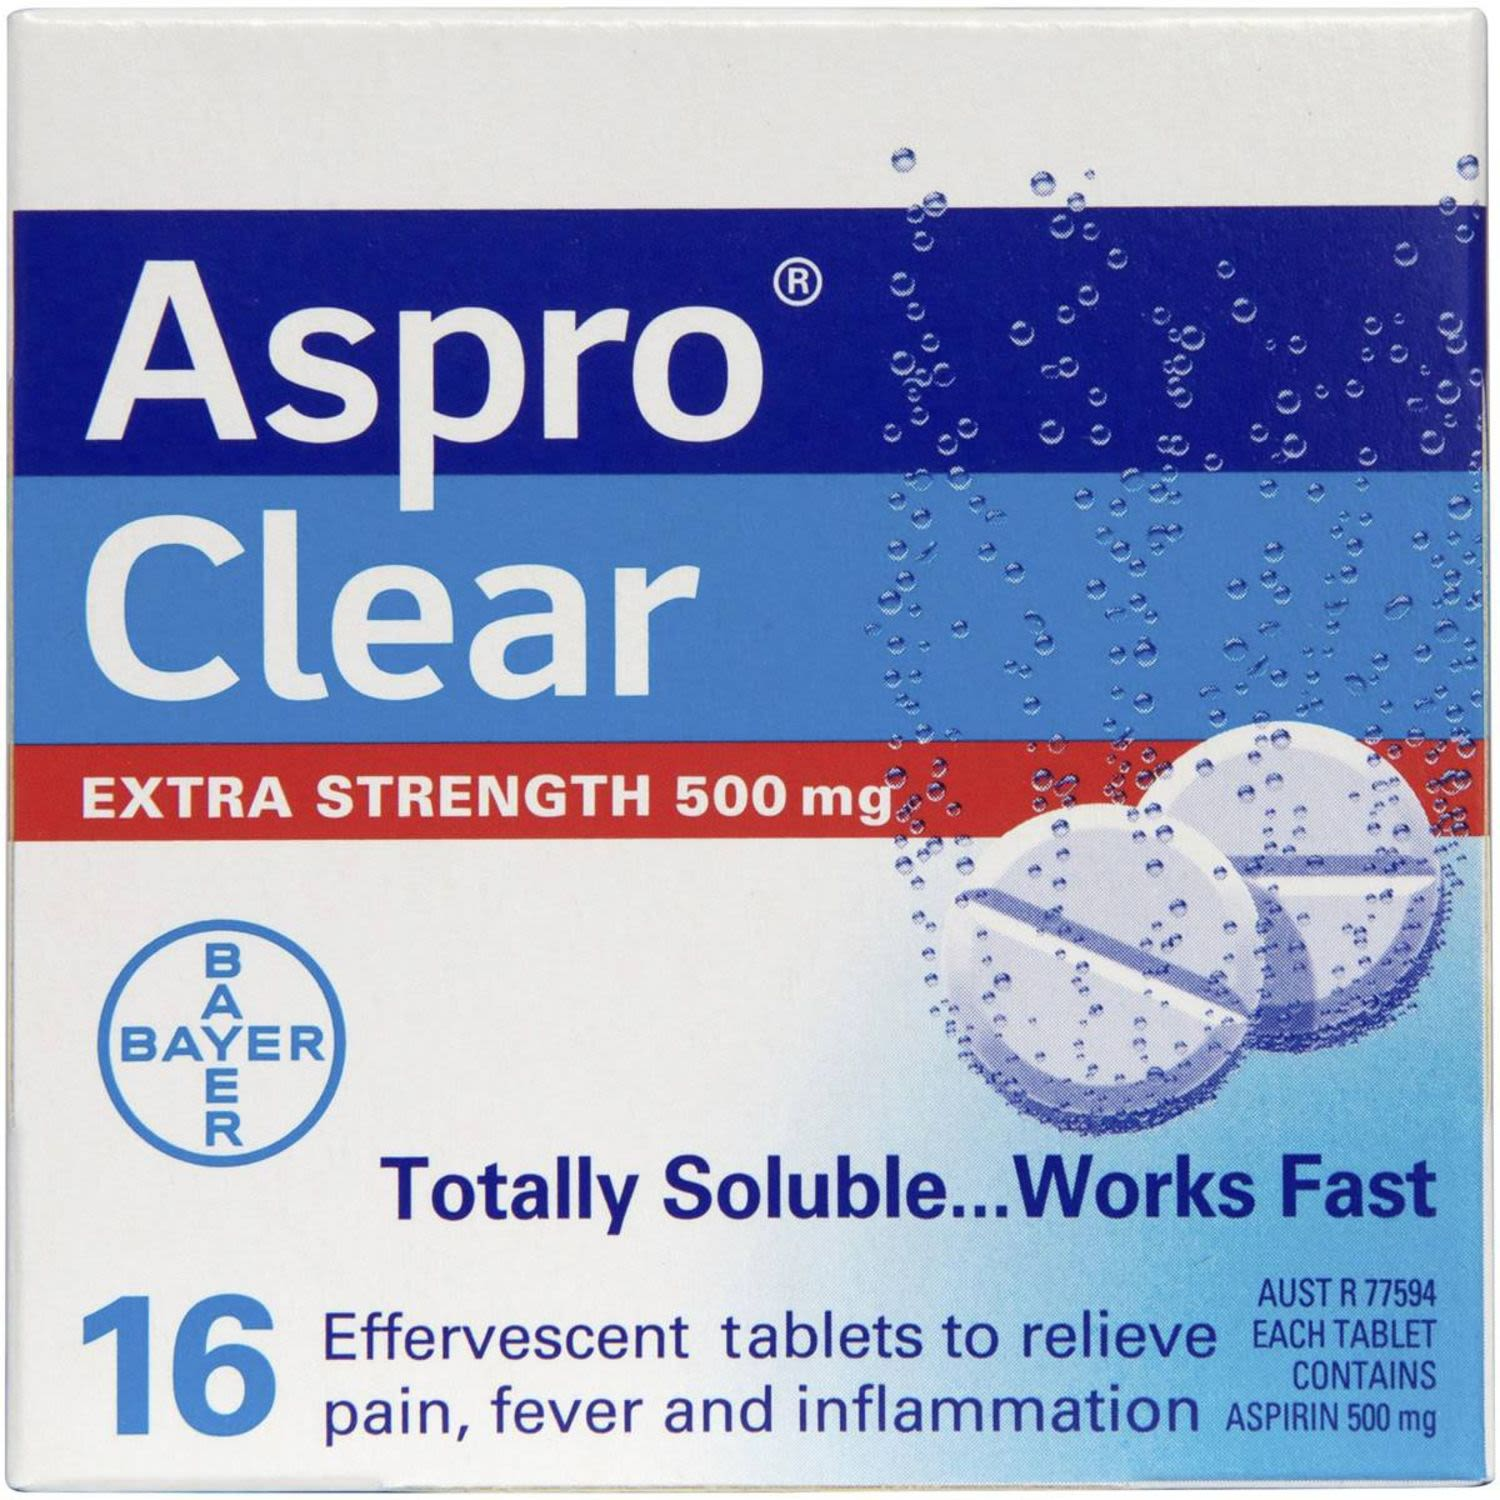 Aspro Clear Extra Strength Pain Relief Aspirin 16 Soluble Effervescent Tablets, 16 Each